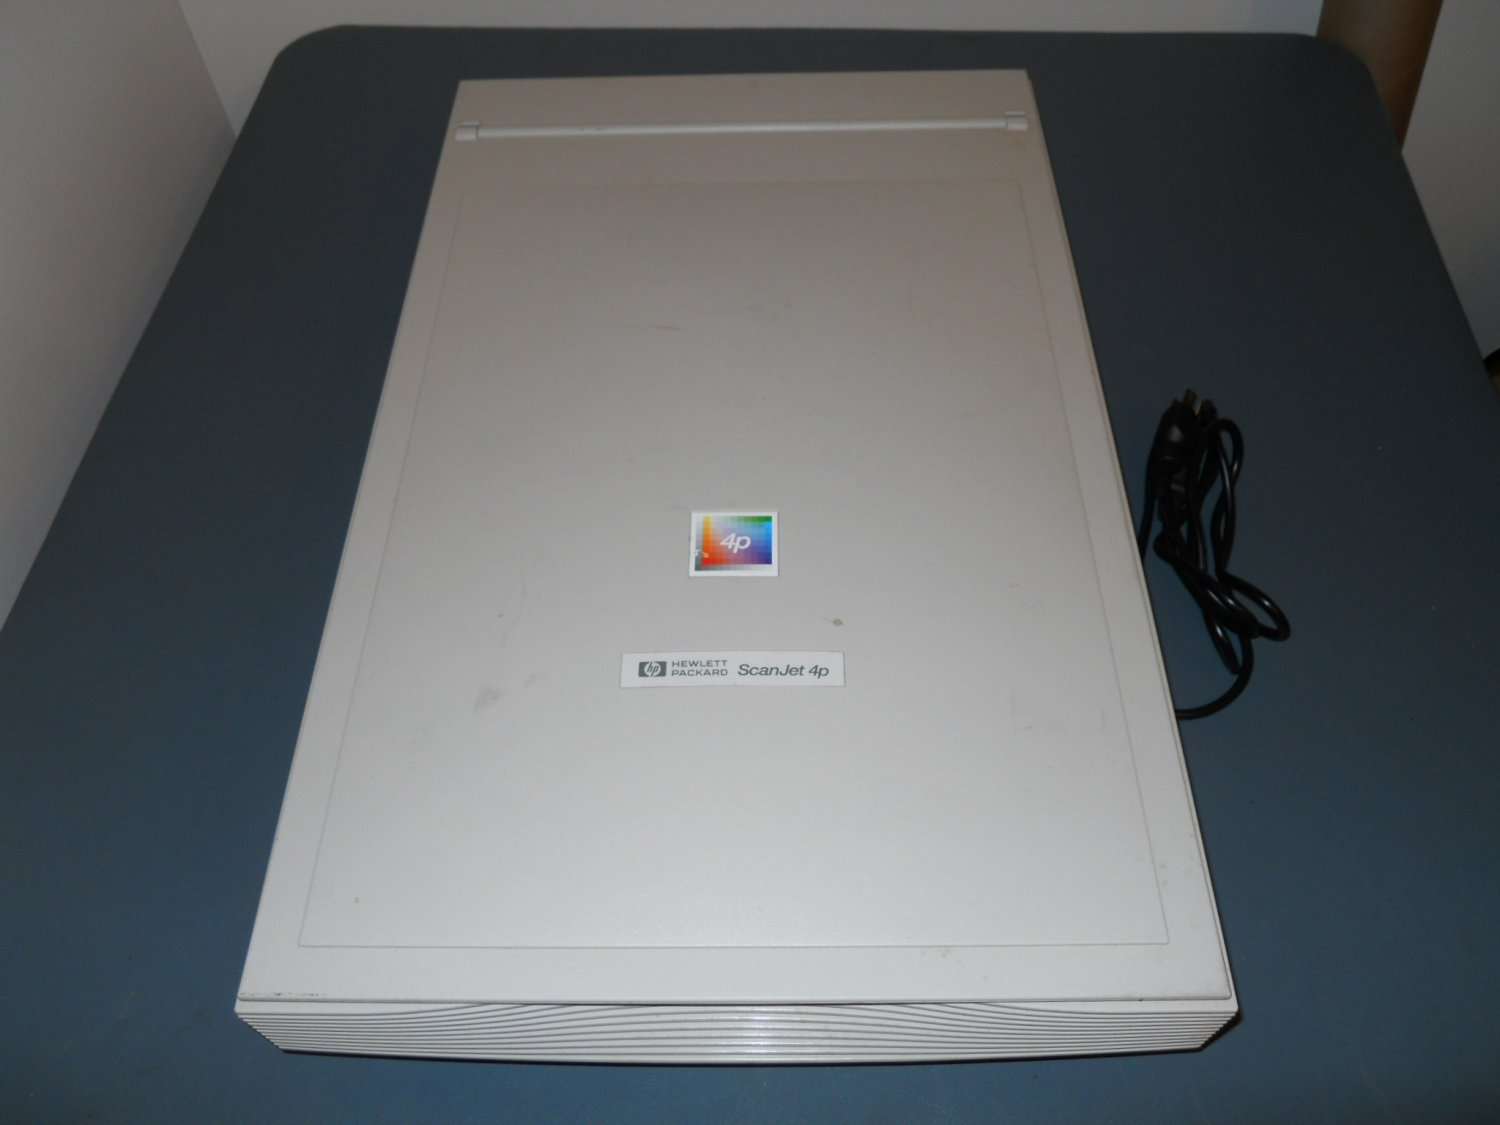 Old Hp Scanjet 4p Flatbed Scanner